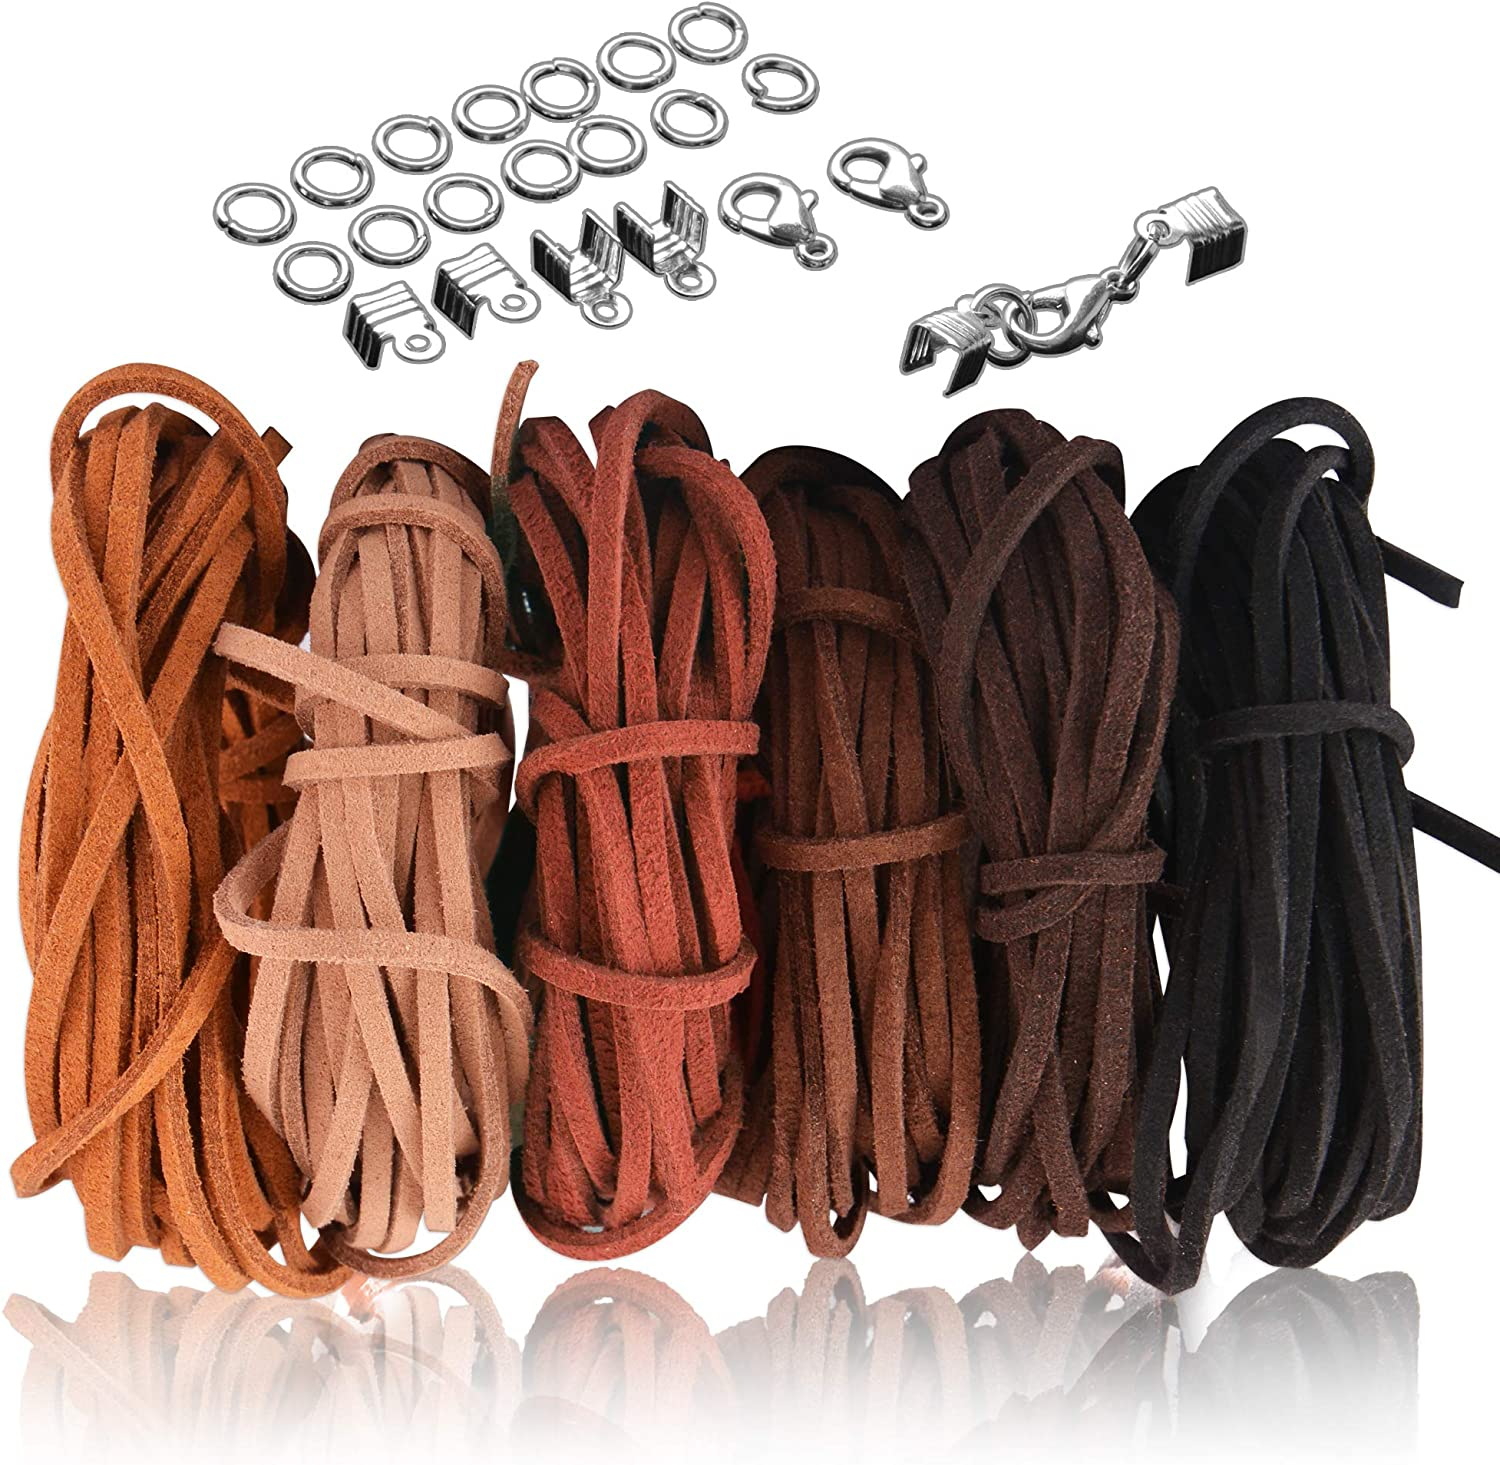 Making DIY Necklace 3mm Cord Suede Jewelry Thread Leather String